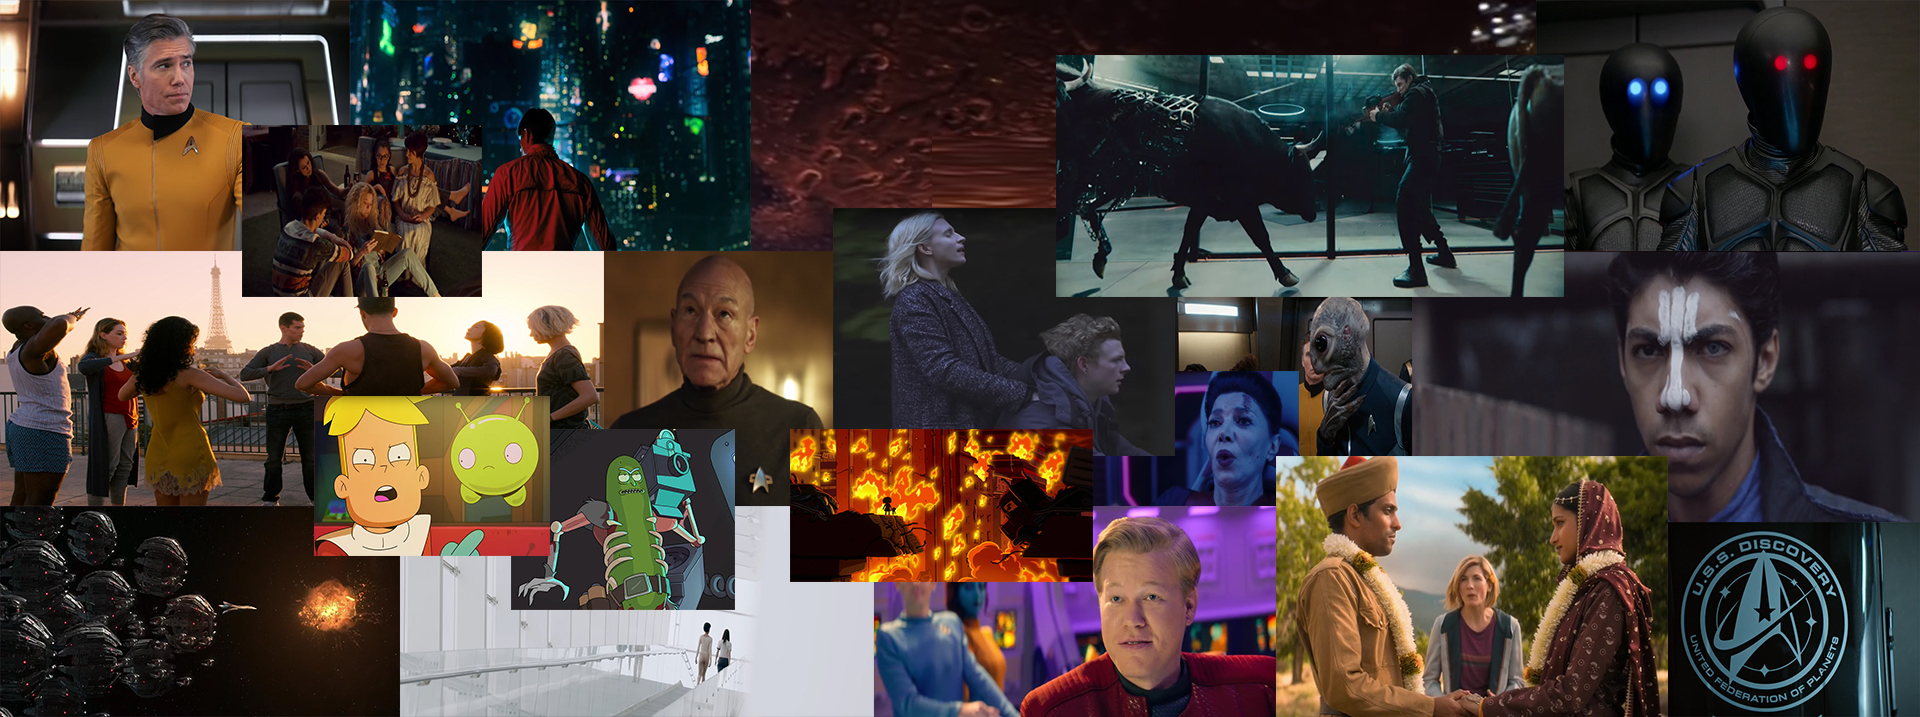 A New Golden Age of Science Fiction on Television